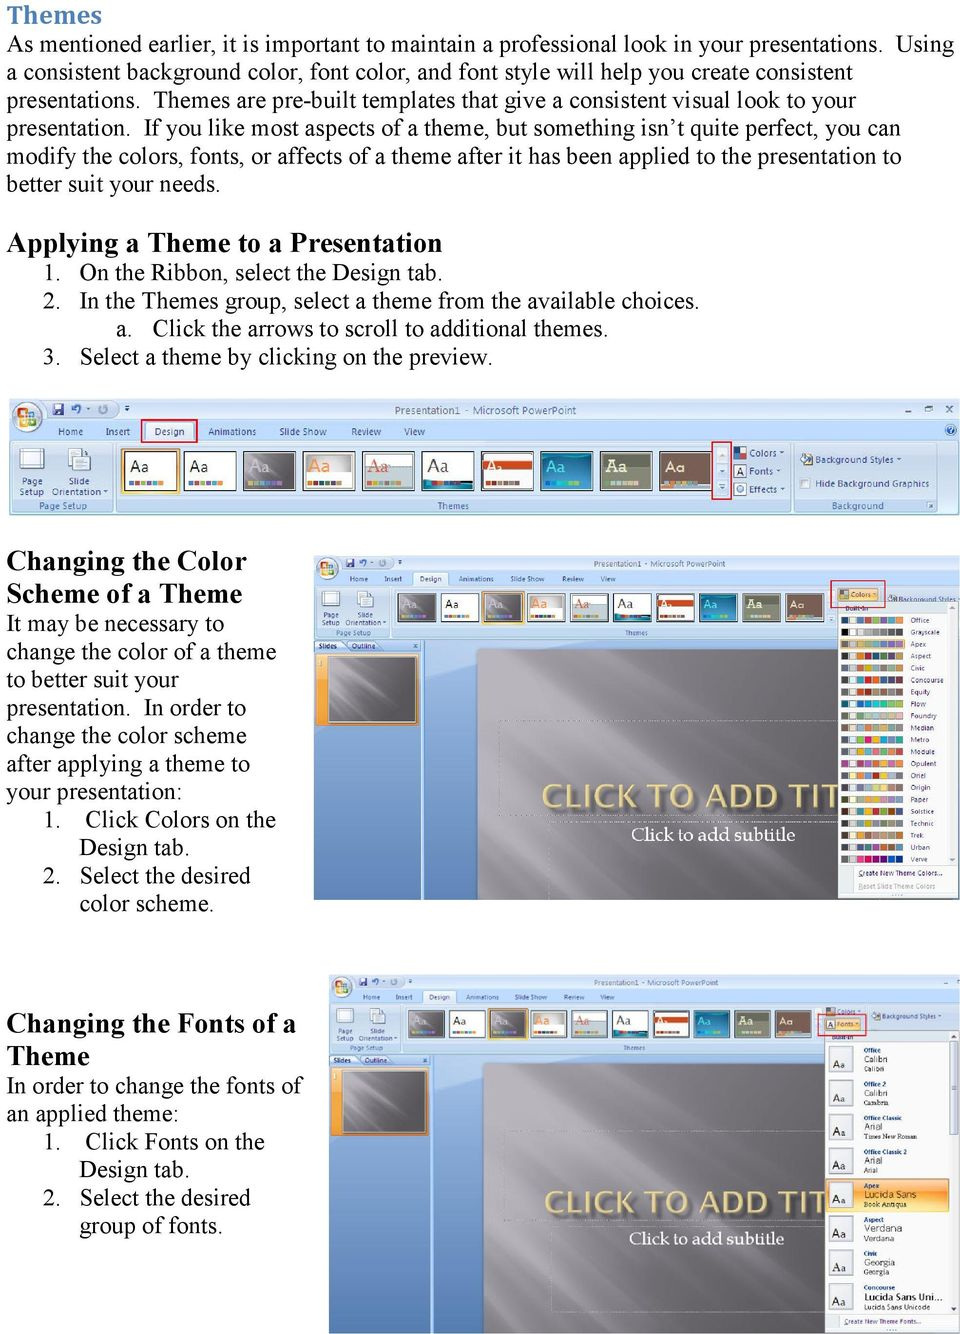 If you like most aspects of a theme, but something isn t quite perfect, you can modify the colors, fonts, or affects of a theme after it has been applied to the presentation to better suit your needs.